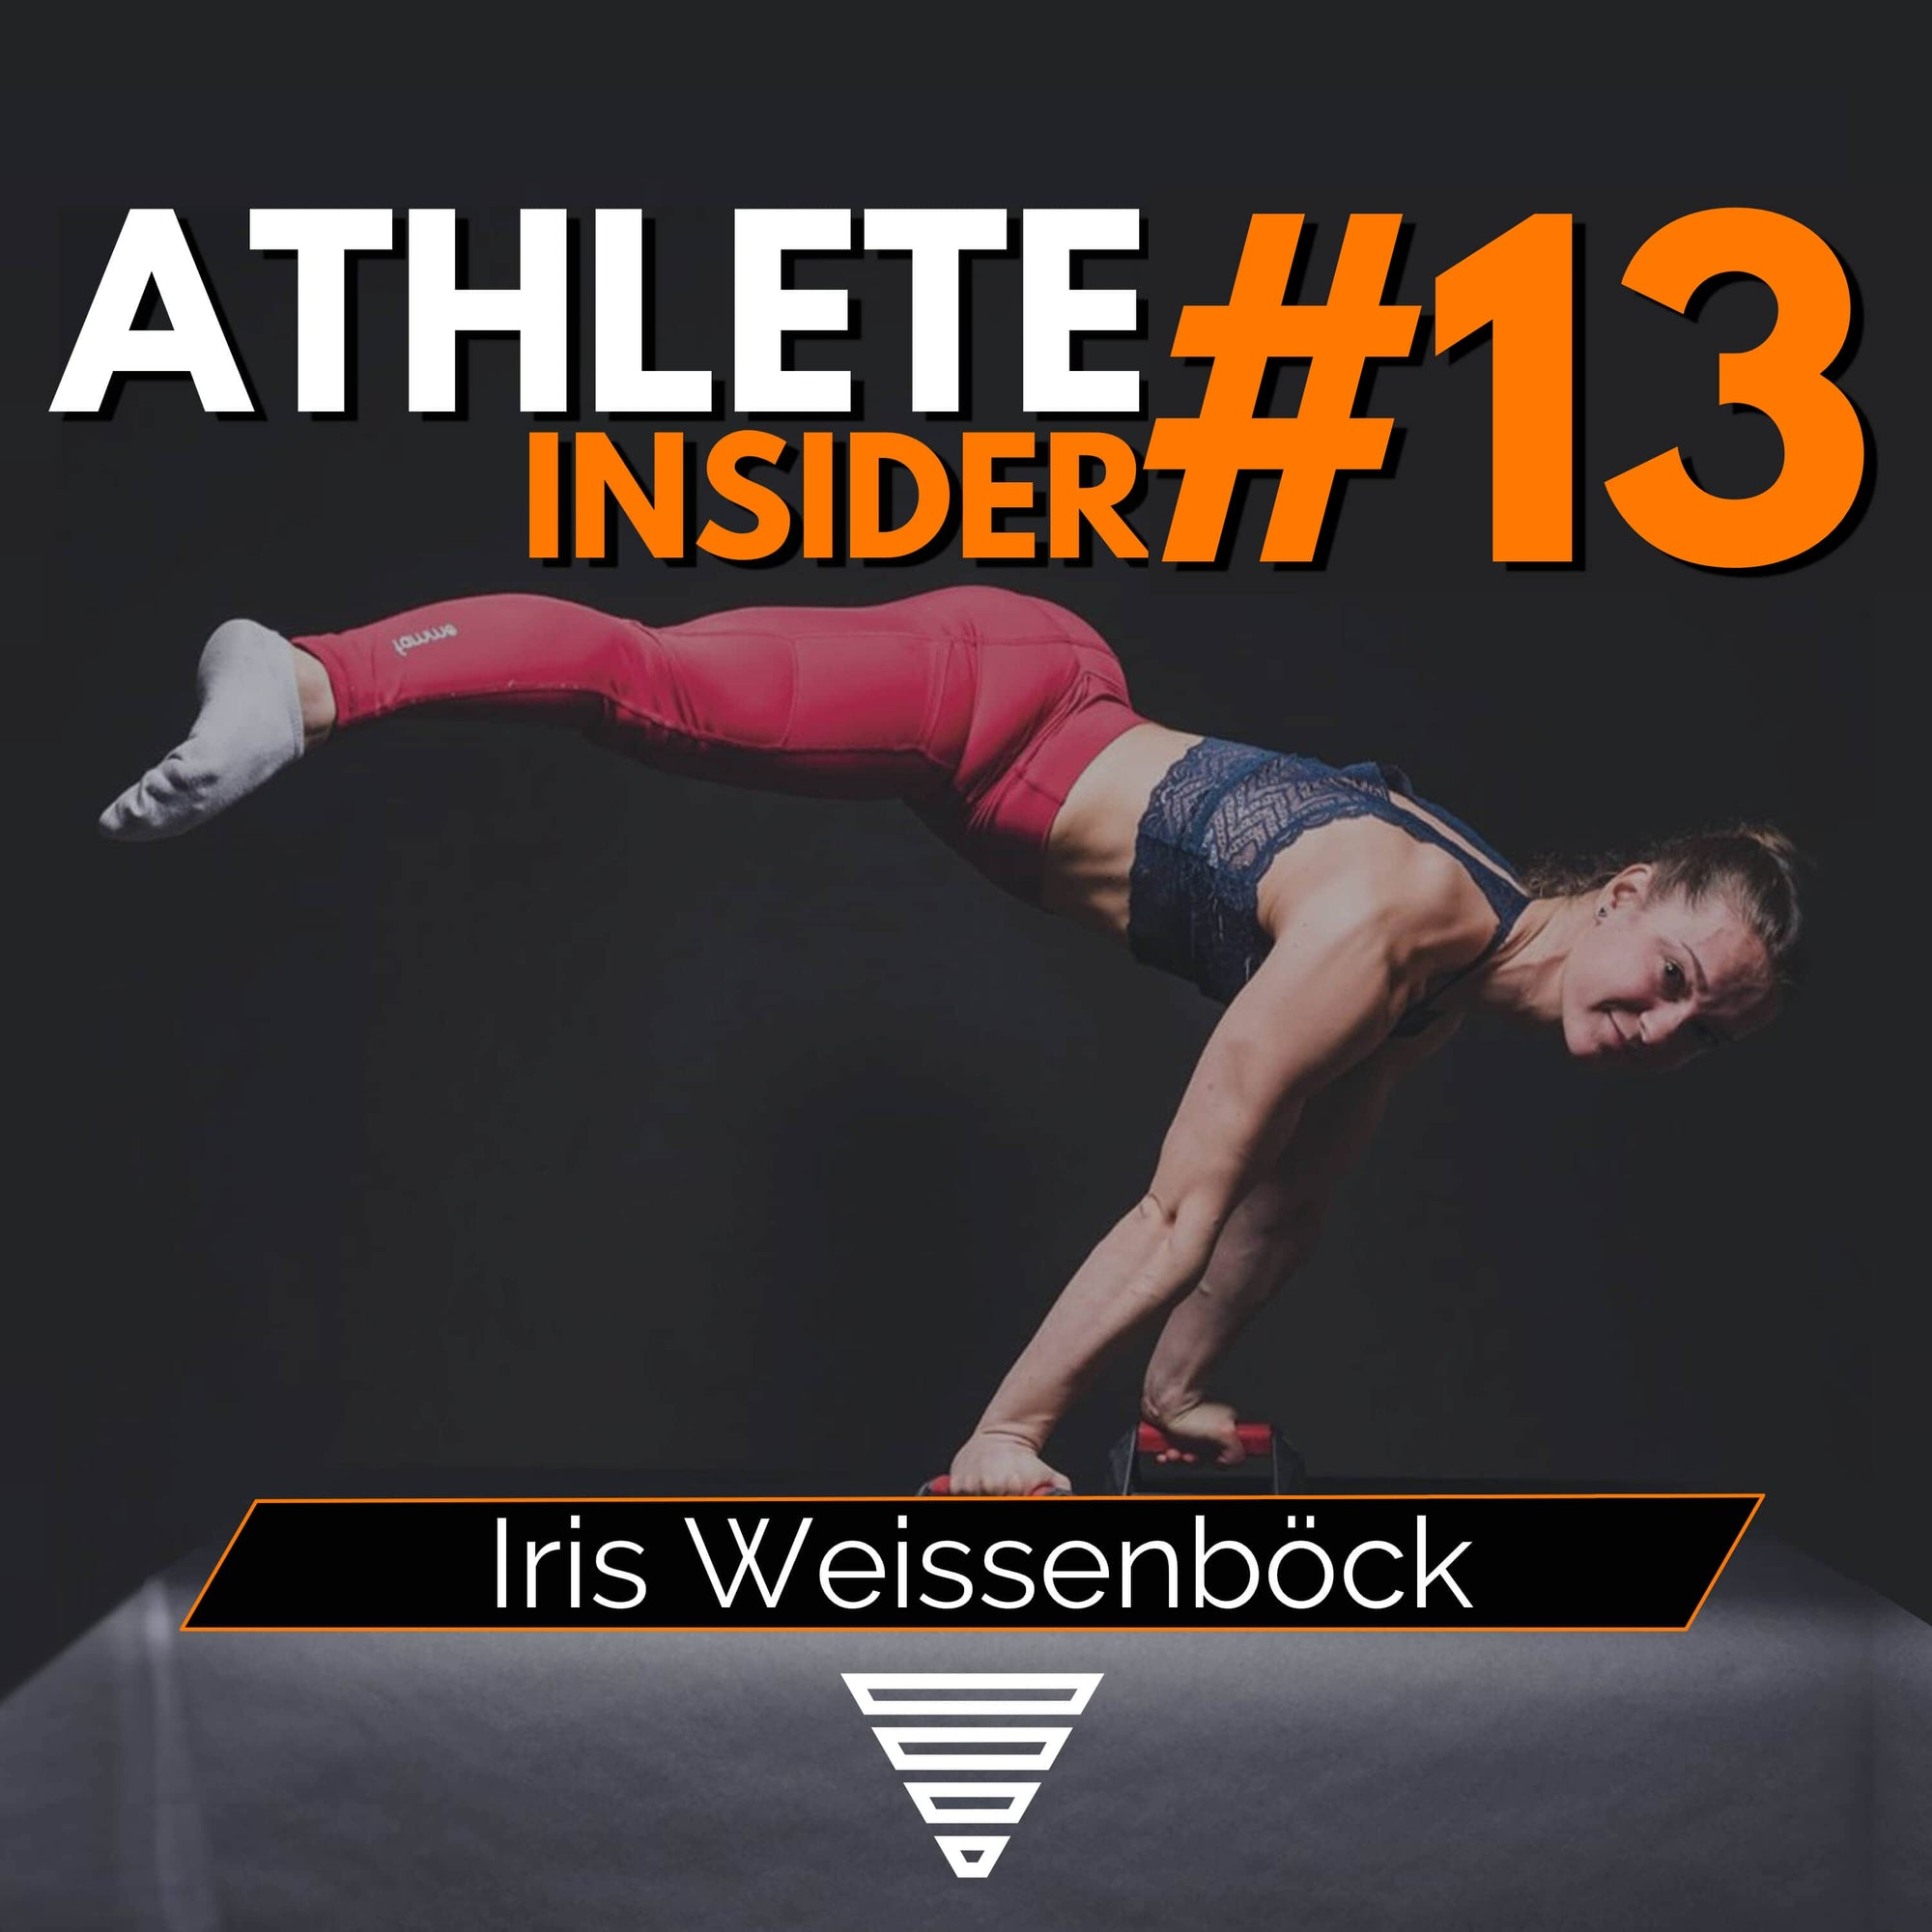 IRIS WEISSENBÖCK | How to start and improve in Calisthenics | The Athlete Insider Podcast #13